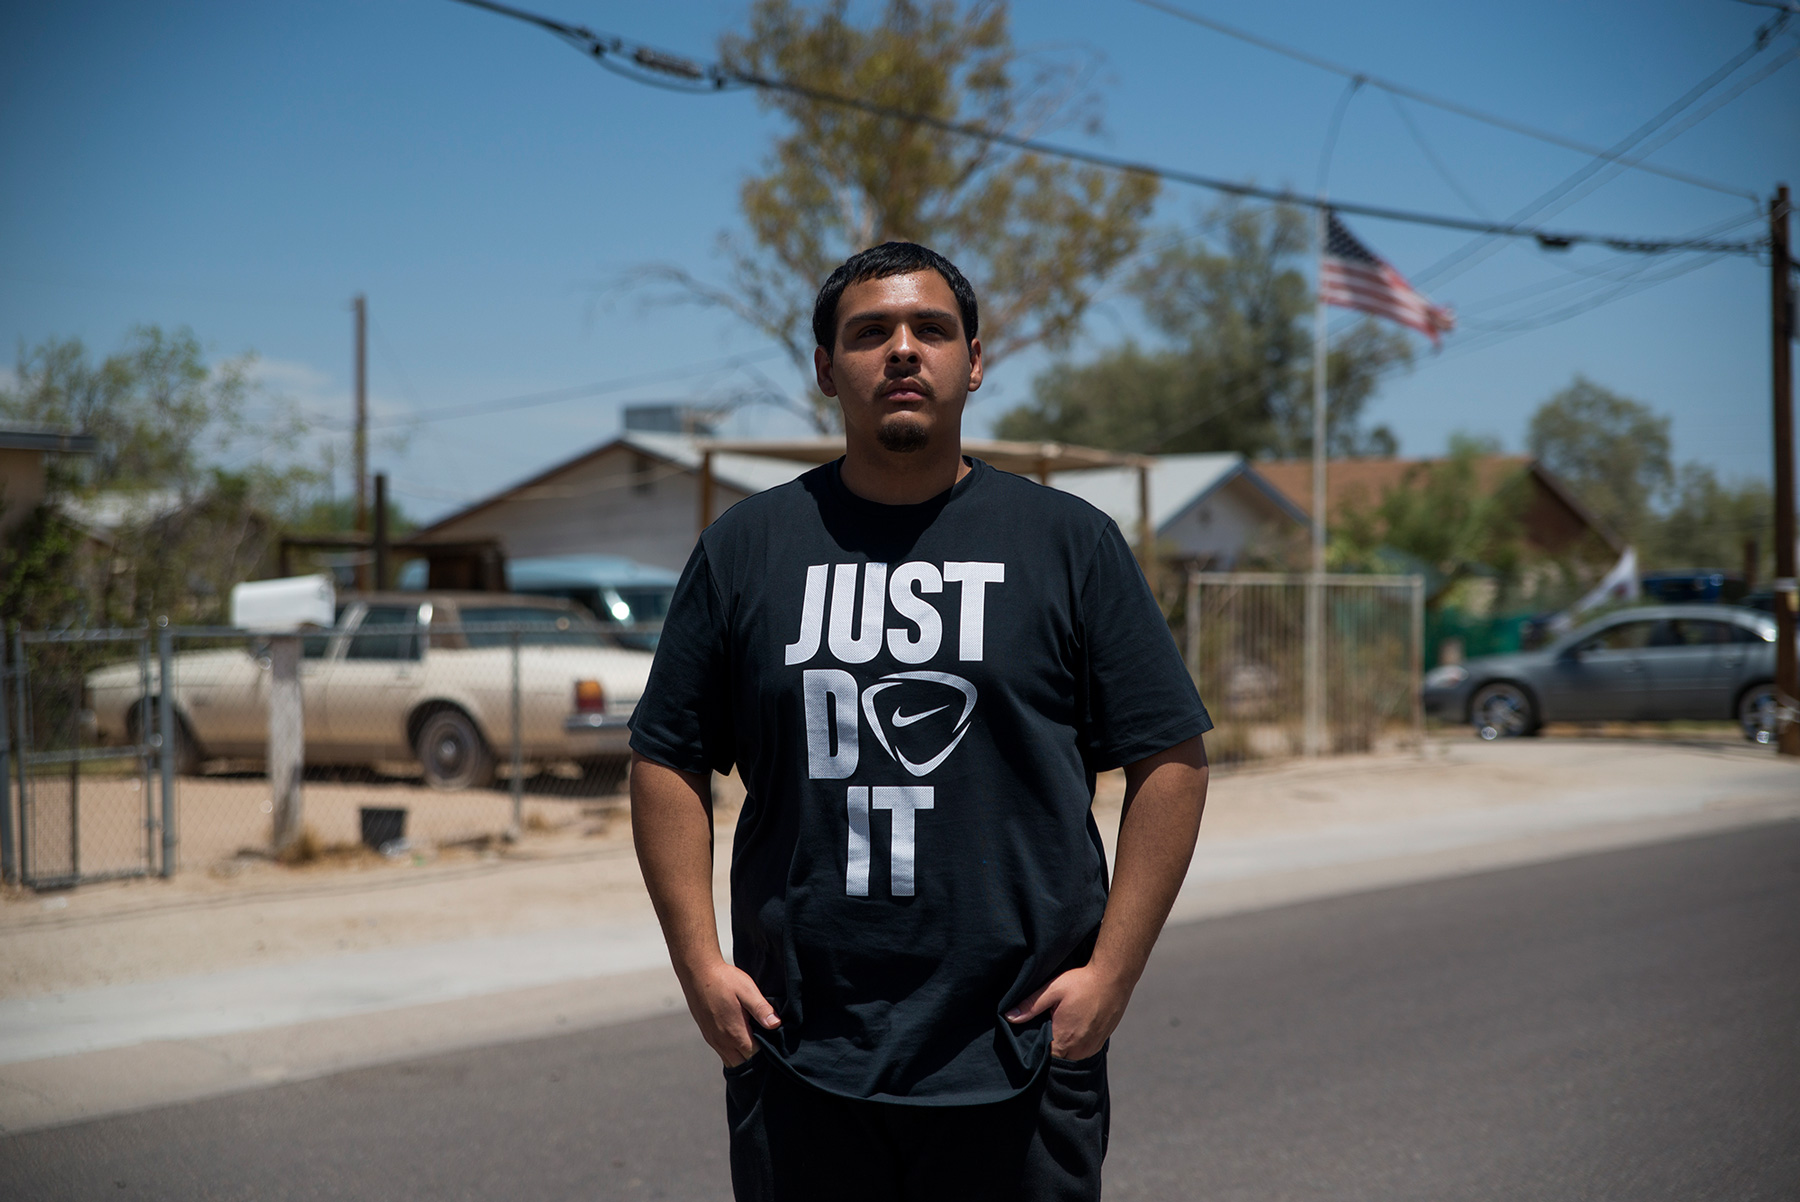 David Castorena, 24, of Chandler, Arizona, stands in the street of a small, largely Latino community in Arizona where he attends church. Castorena said he does not plan to vote in the November election because he thinks Donald Trump will win either way. (Roman Knertser/News21)